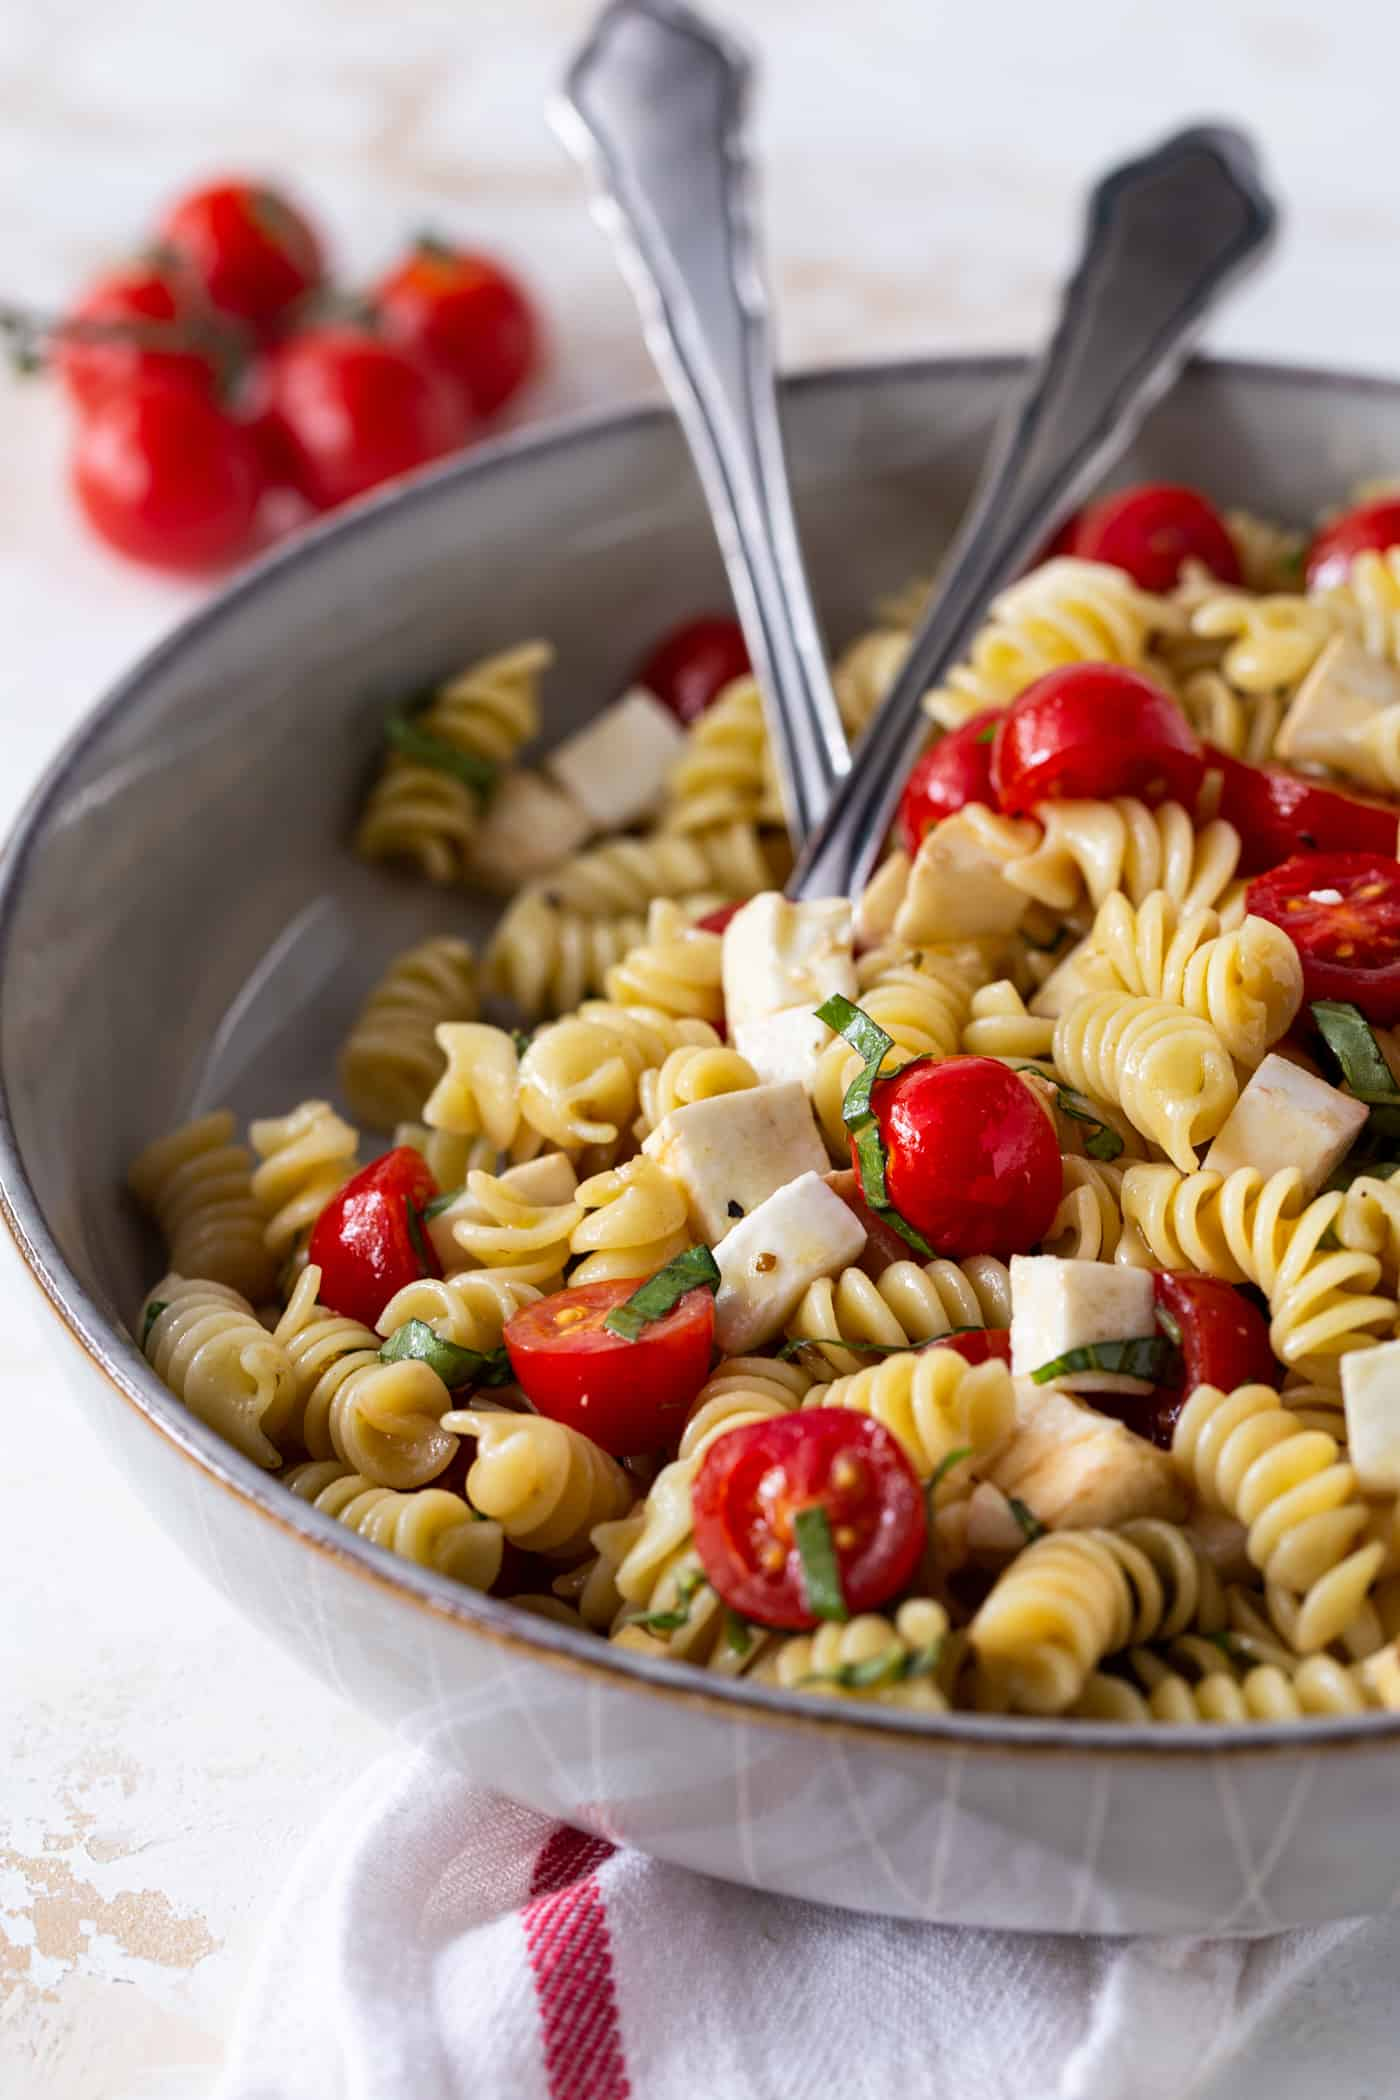 A bowl of Pasta with tomatoes and mozzarella.